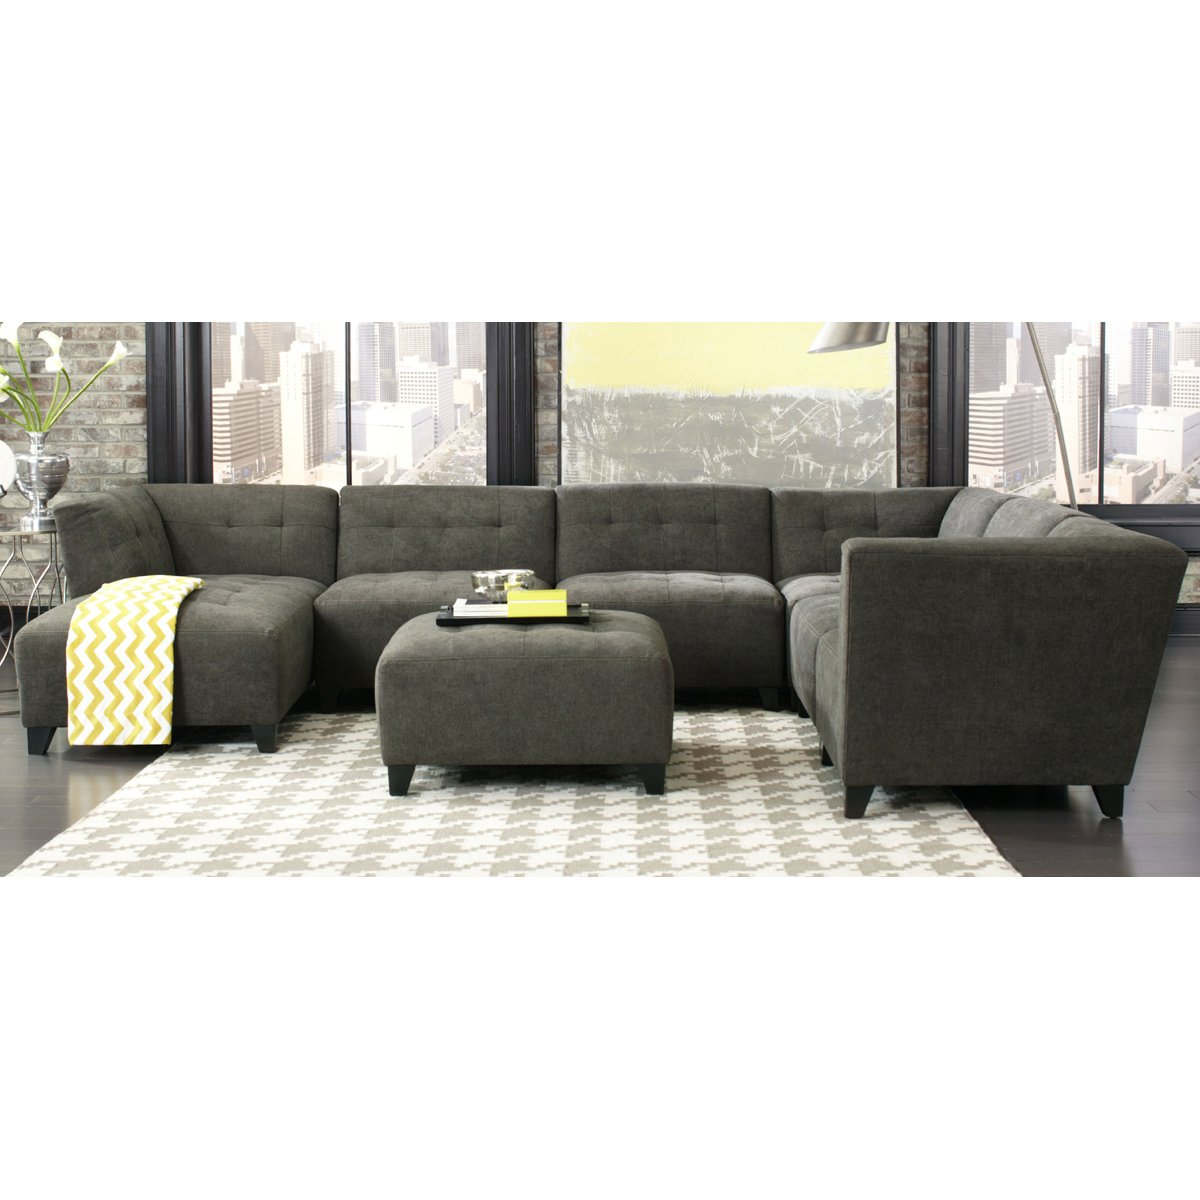 granite gray classic modern 6piece sectional blaire